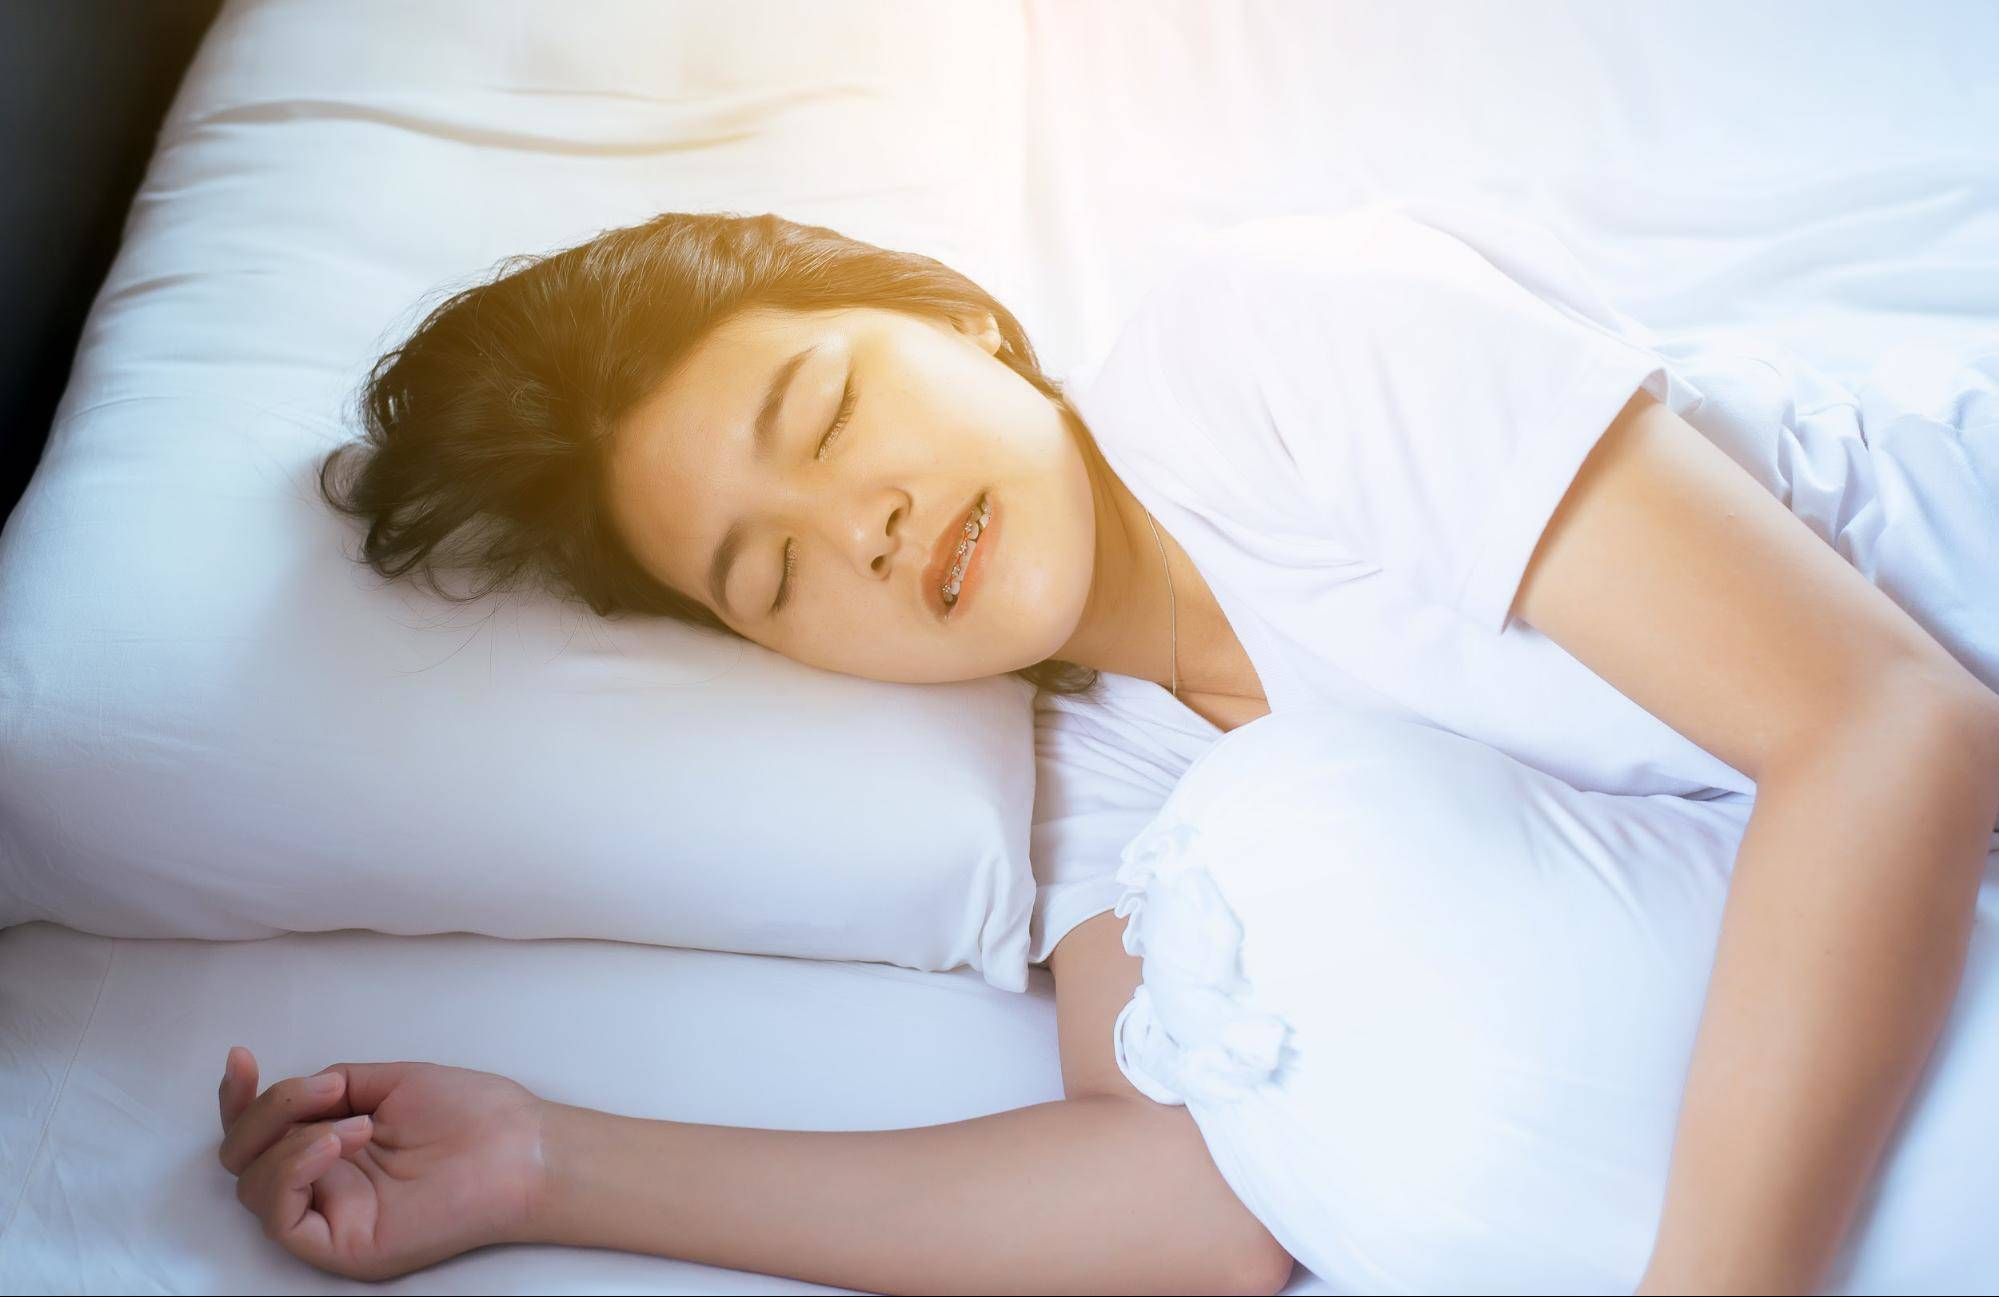 female sleeping on a fluffy pillow with mouthguard